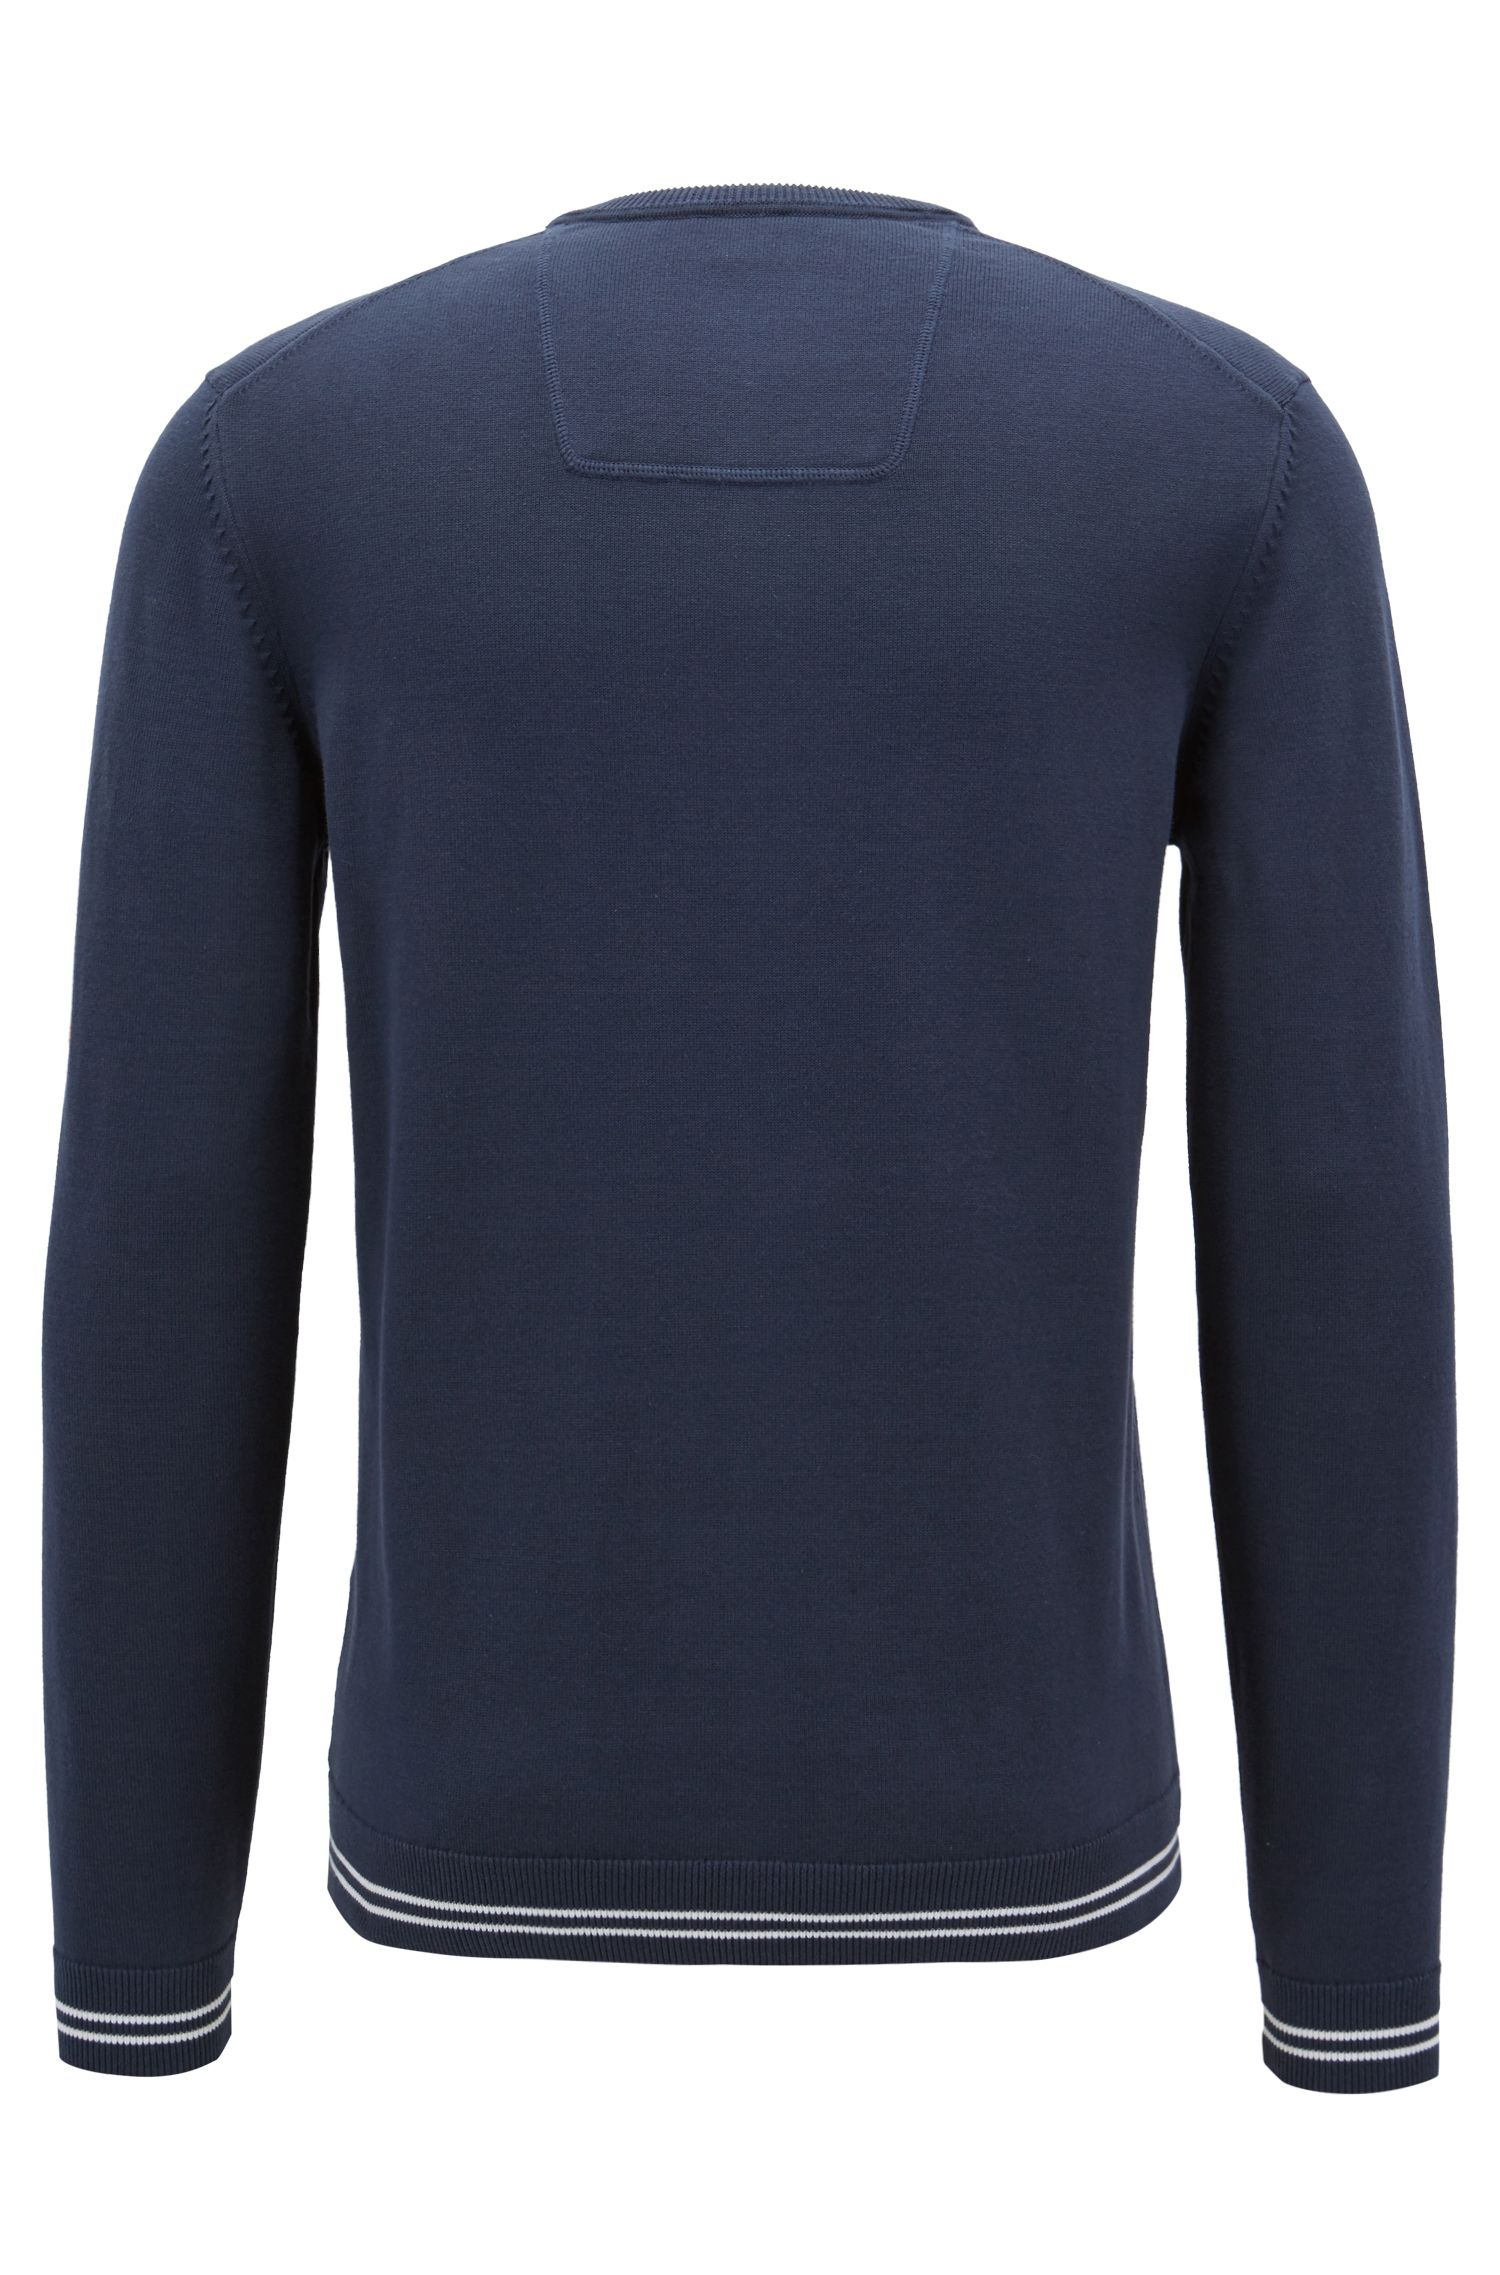 Hugo Boss - Knitted sweater with contrast tipping and logo intarsia - 3